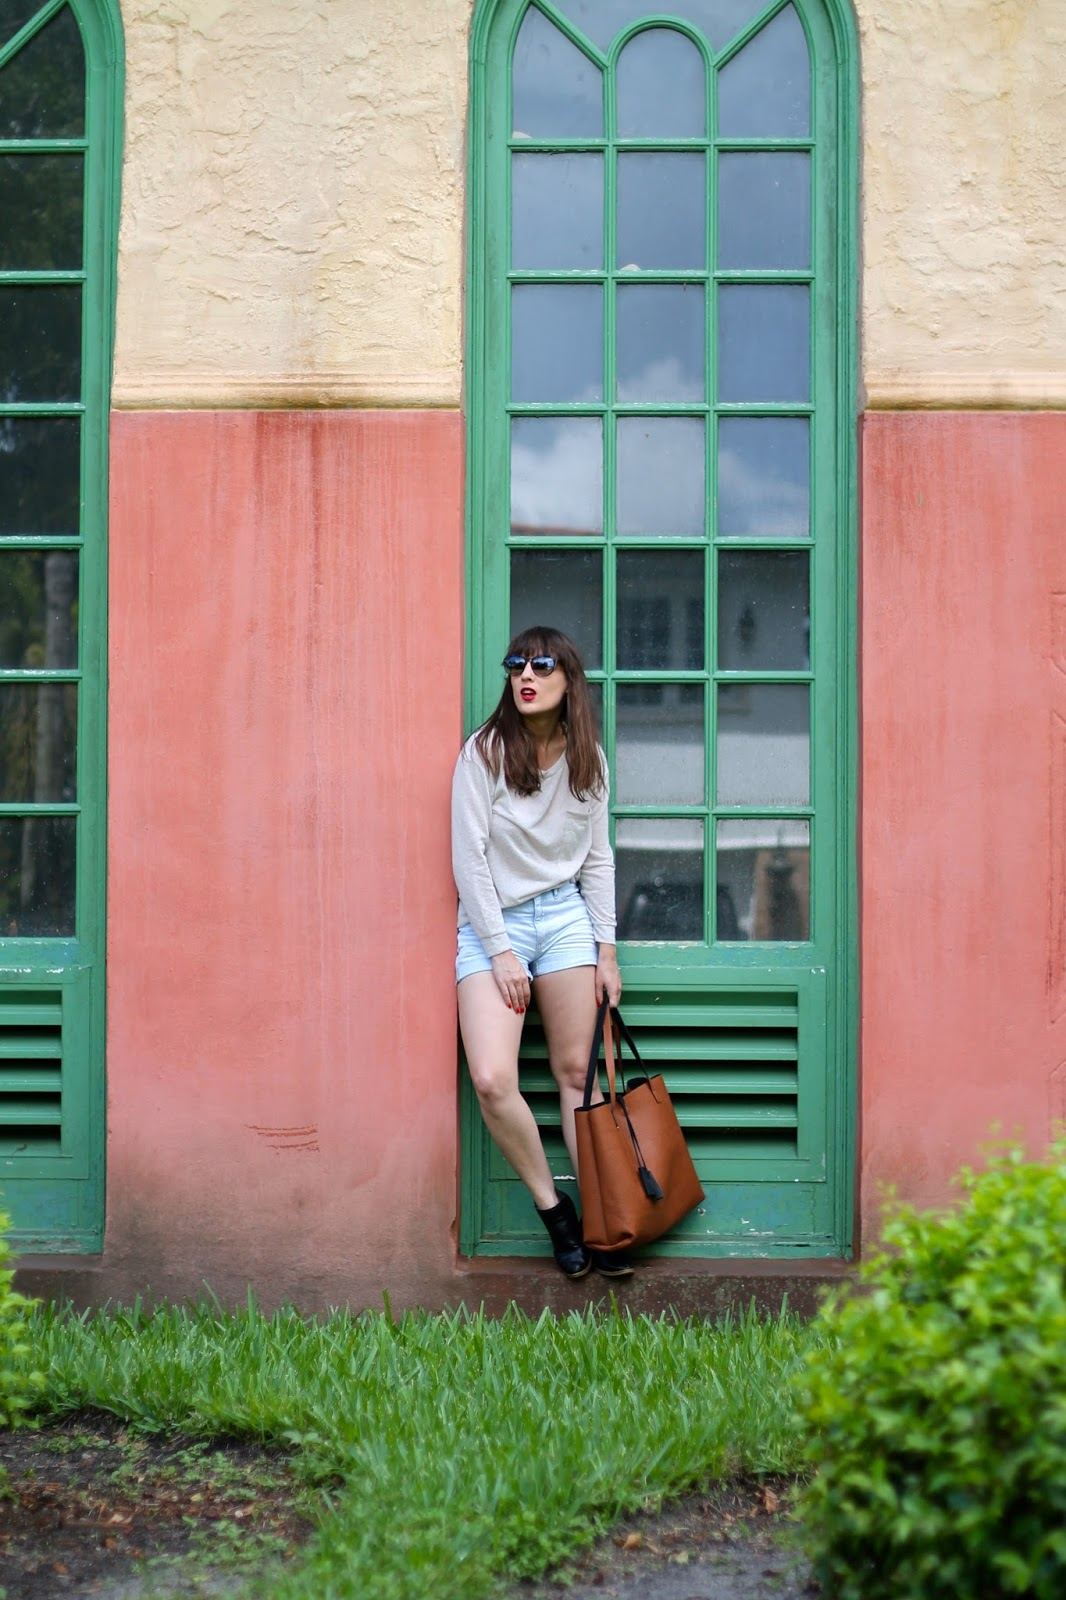 Miami, fashion blog, style blog, capsule collection, capsule blogger, minimalism, outfit ideas, reversible tote, Nordstrom, DVF, Target, Nordstrom Rack, Gap